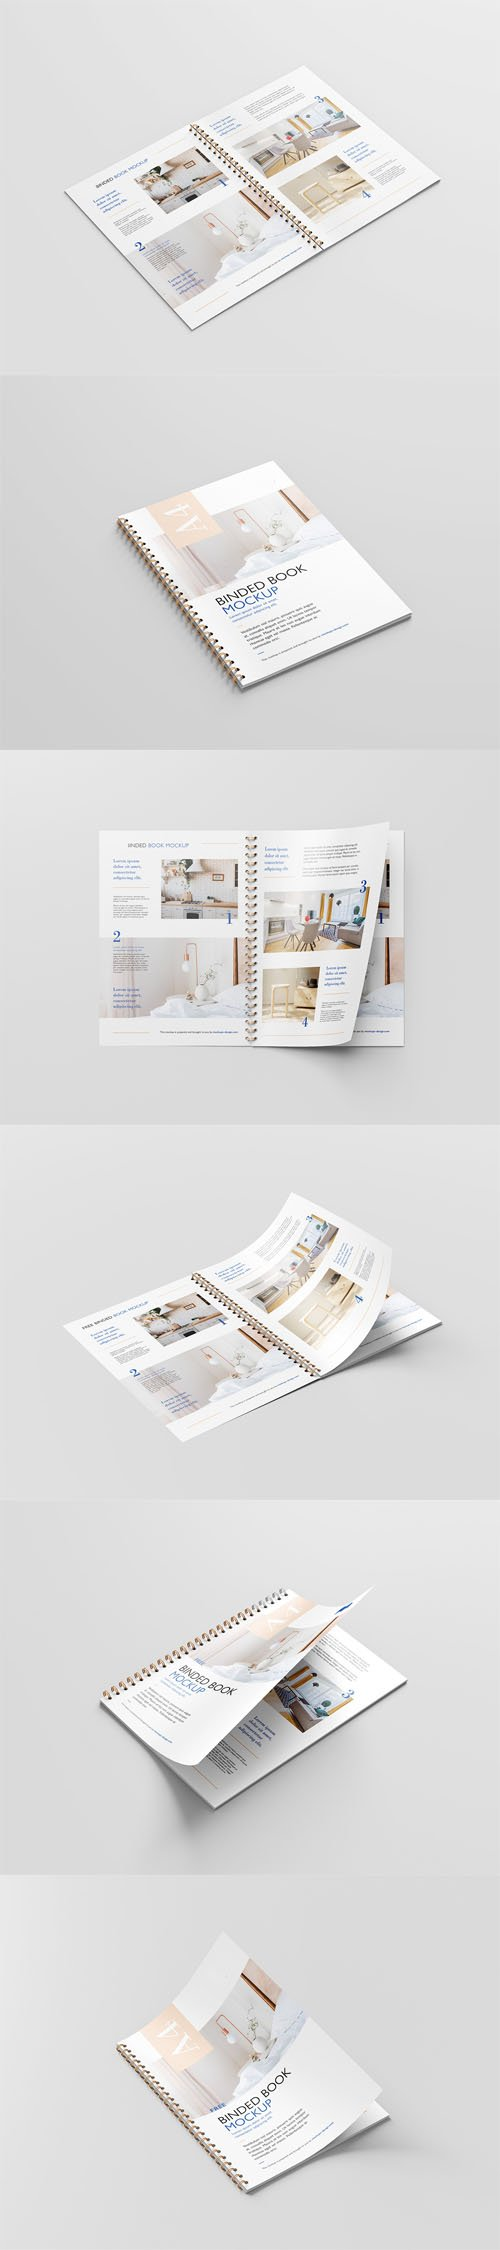 Binded Book PSD Mockup Template